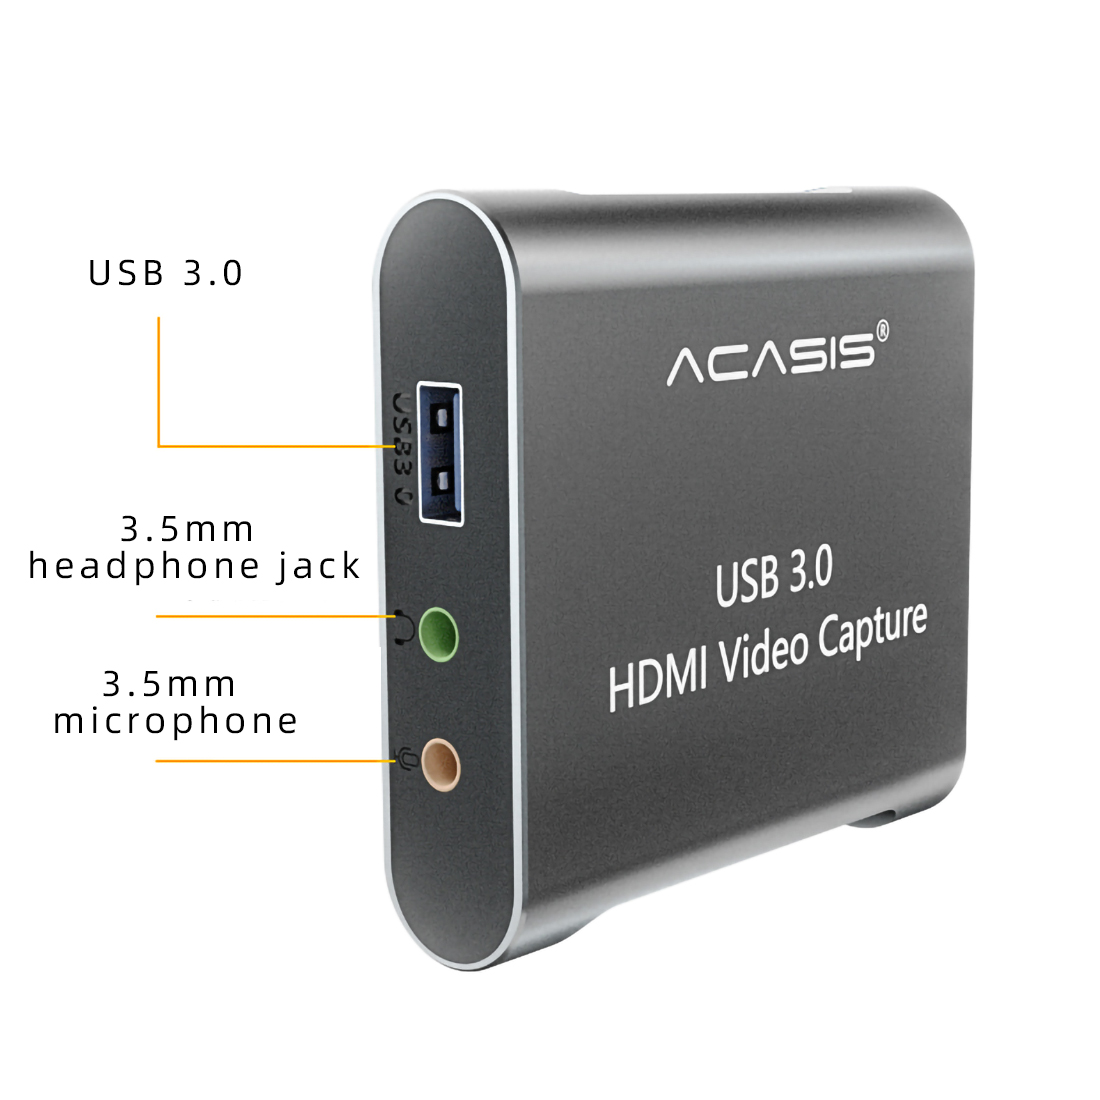 Acasis 4K 1080P Video Capture Card USB 3.0 HD Recorder for Game Video Live Streaming Compatible for PS4 Xbox PC Swich image